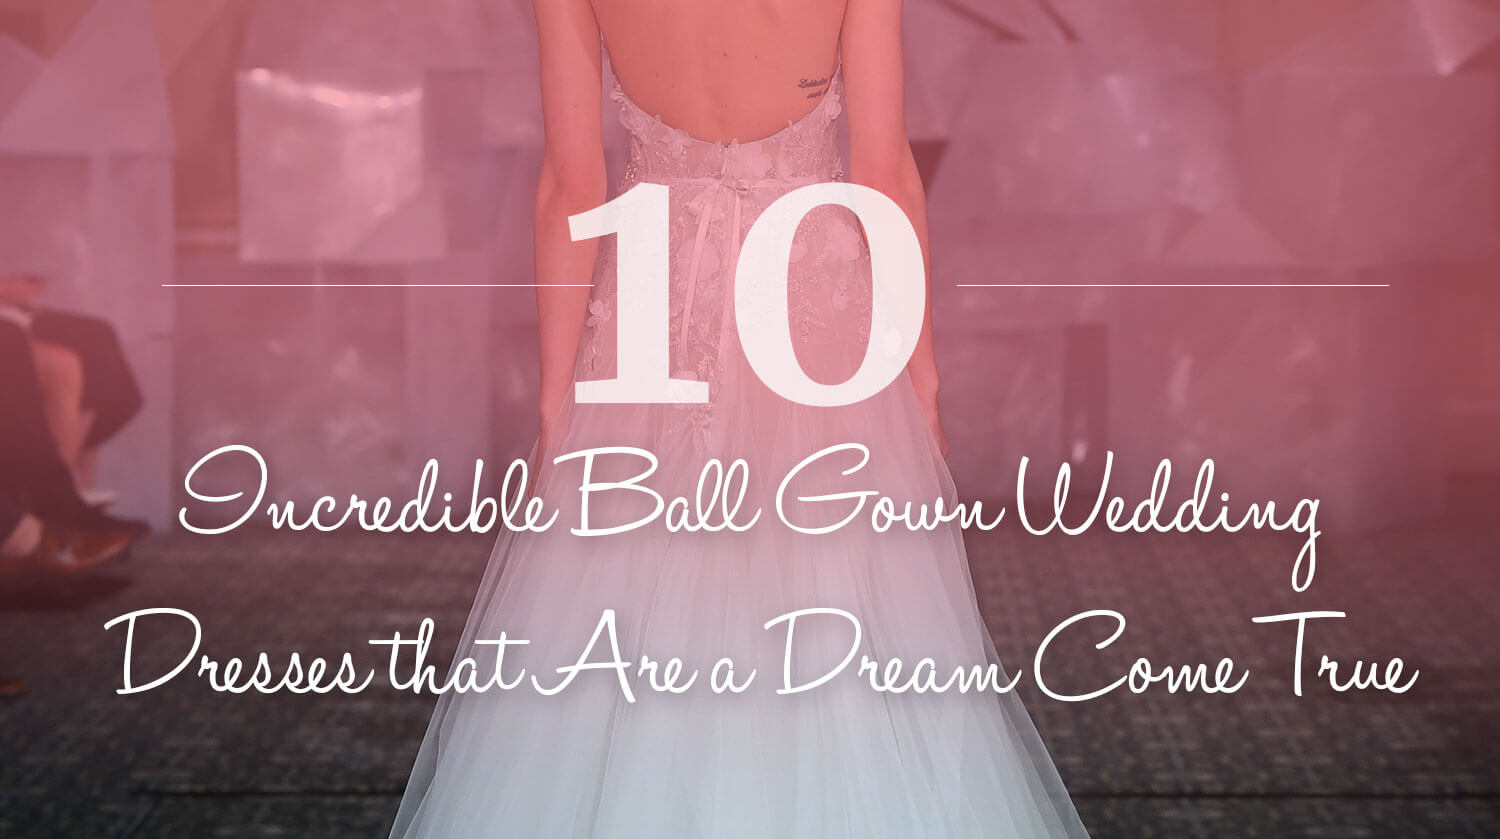 10 Incredible Ball Gown Wedding Dresses that Are a Dream Come True